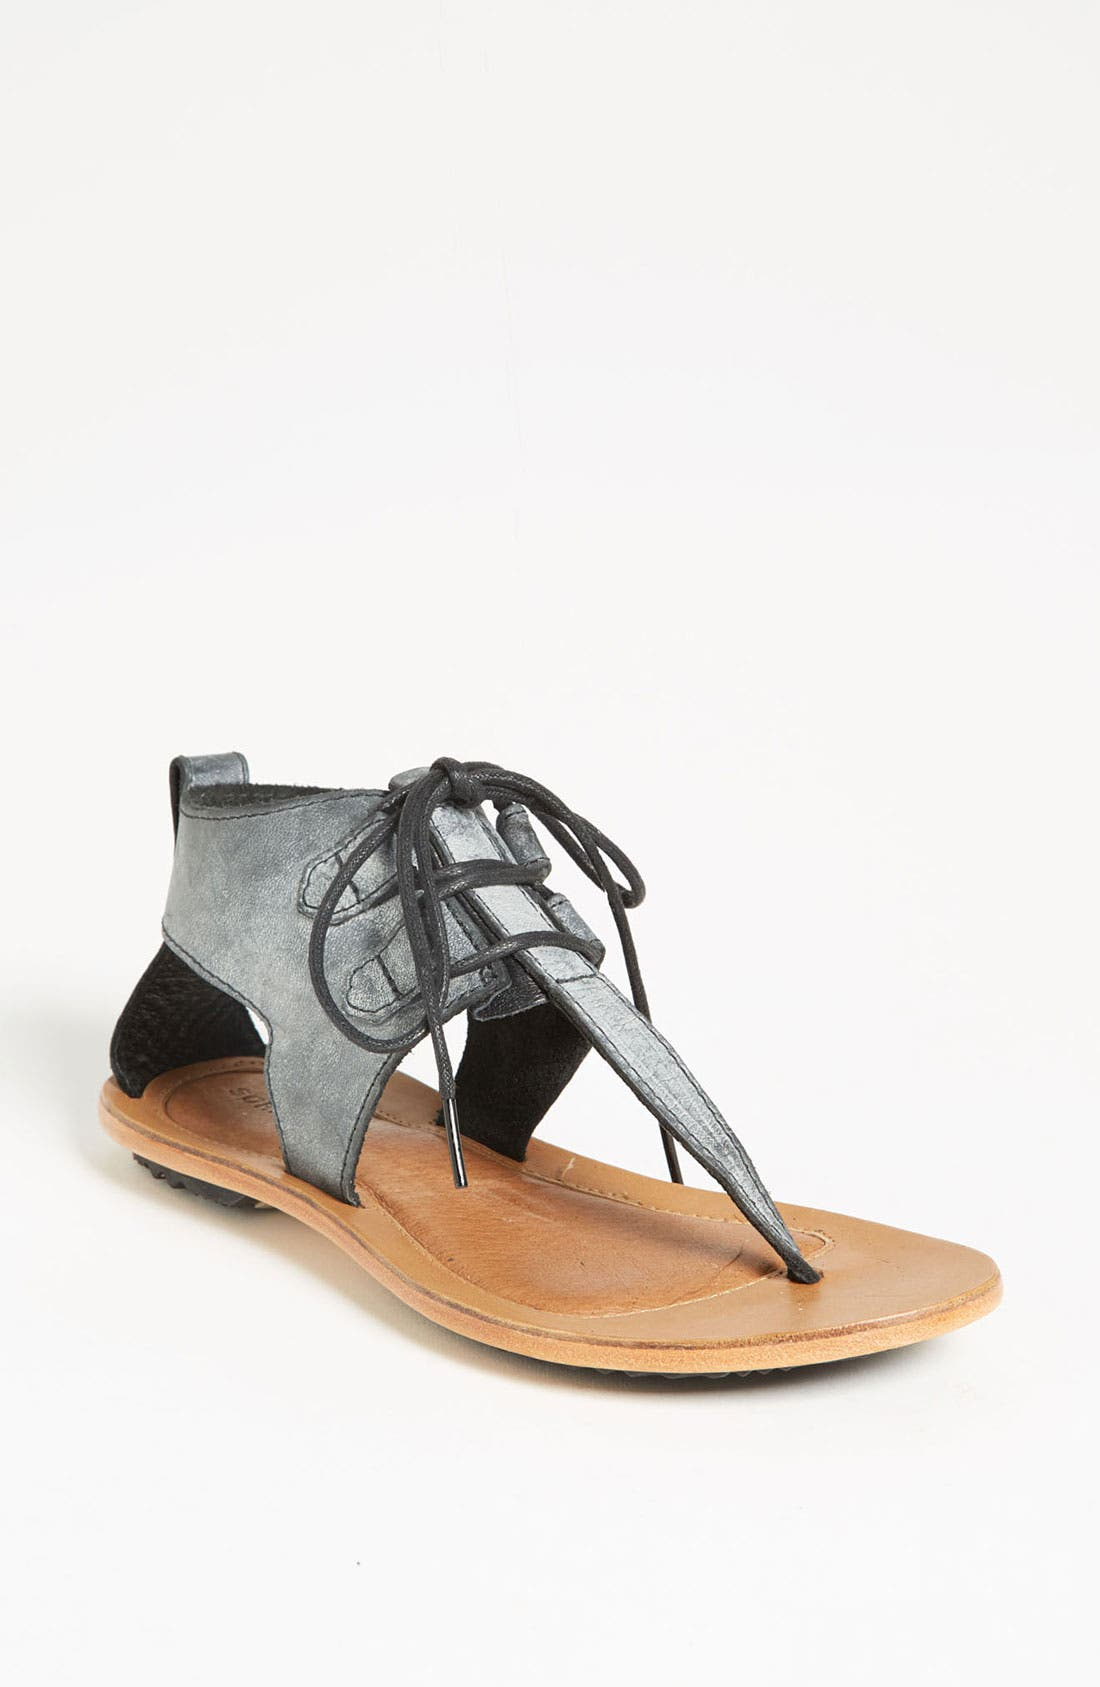 Main Image - Sorel 'Summer' Sandal